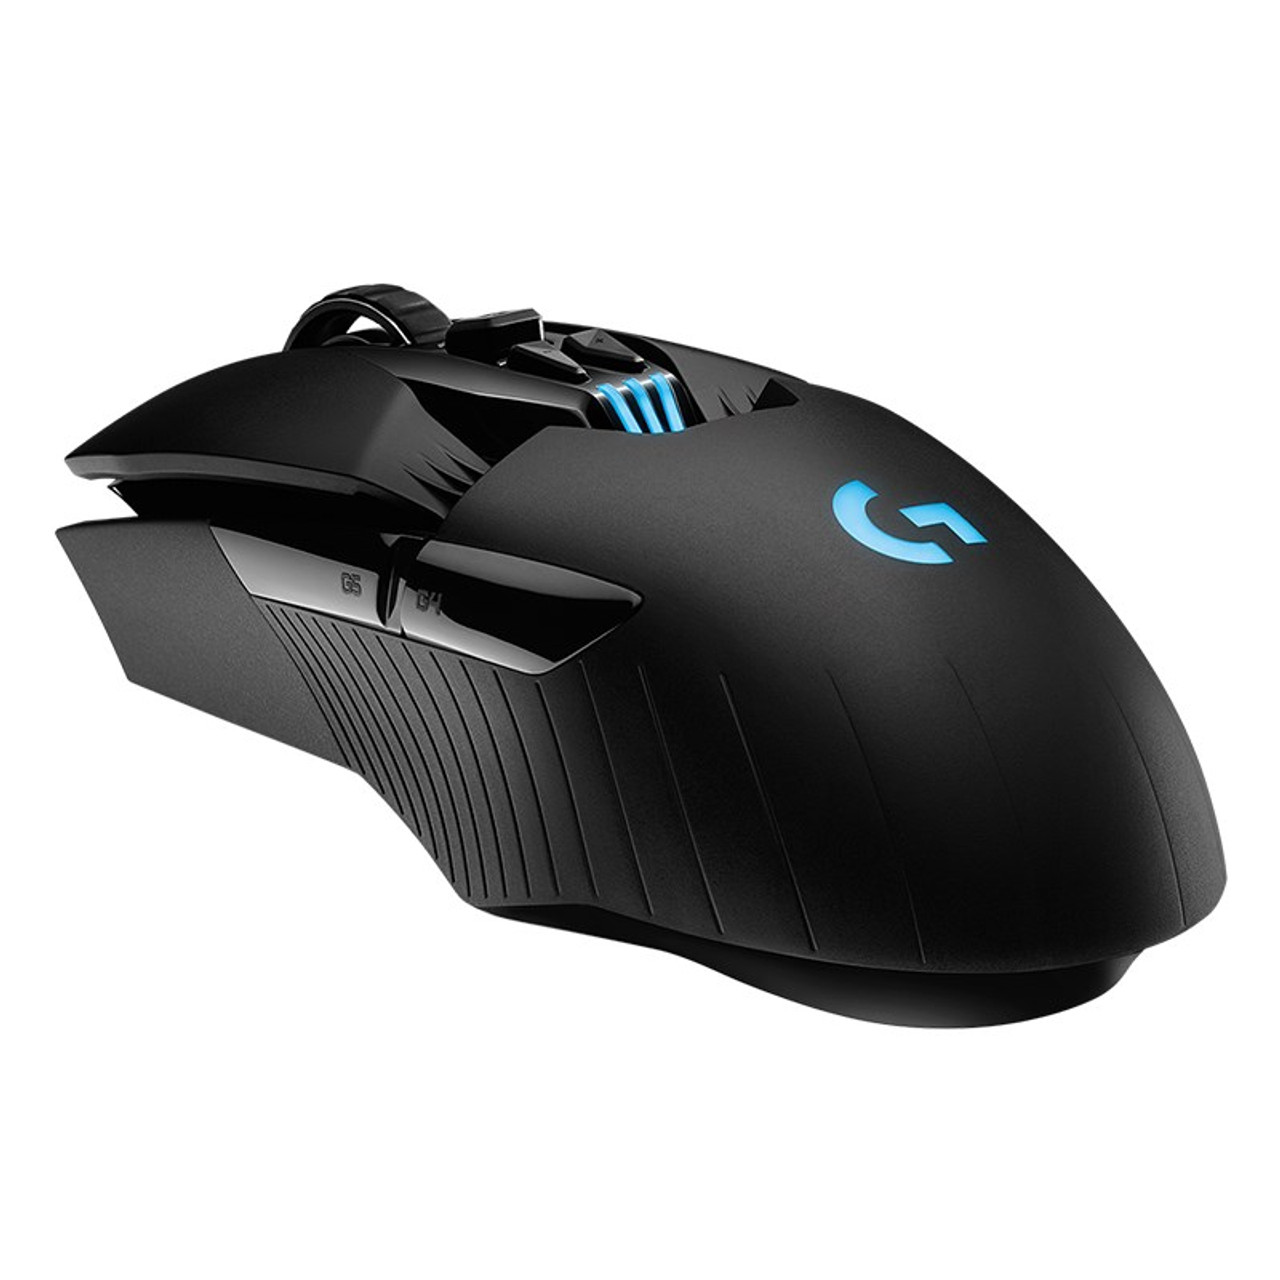 Product image for Logitech G903 HERO LIGHTSPEED Wireless Gaming Mouse | CX Computer Superstore